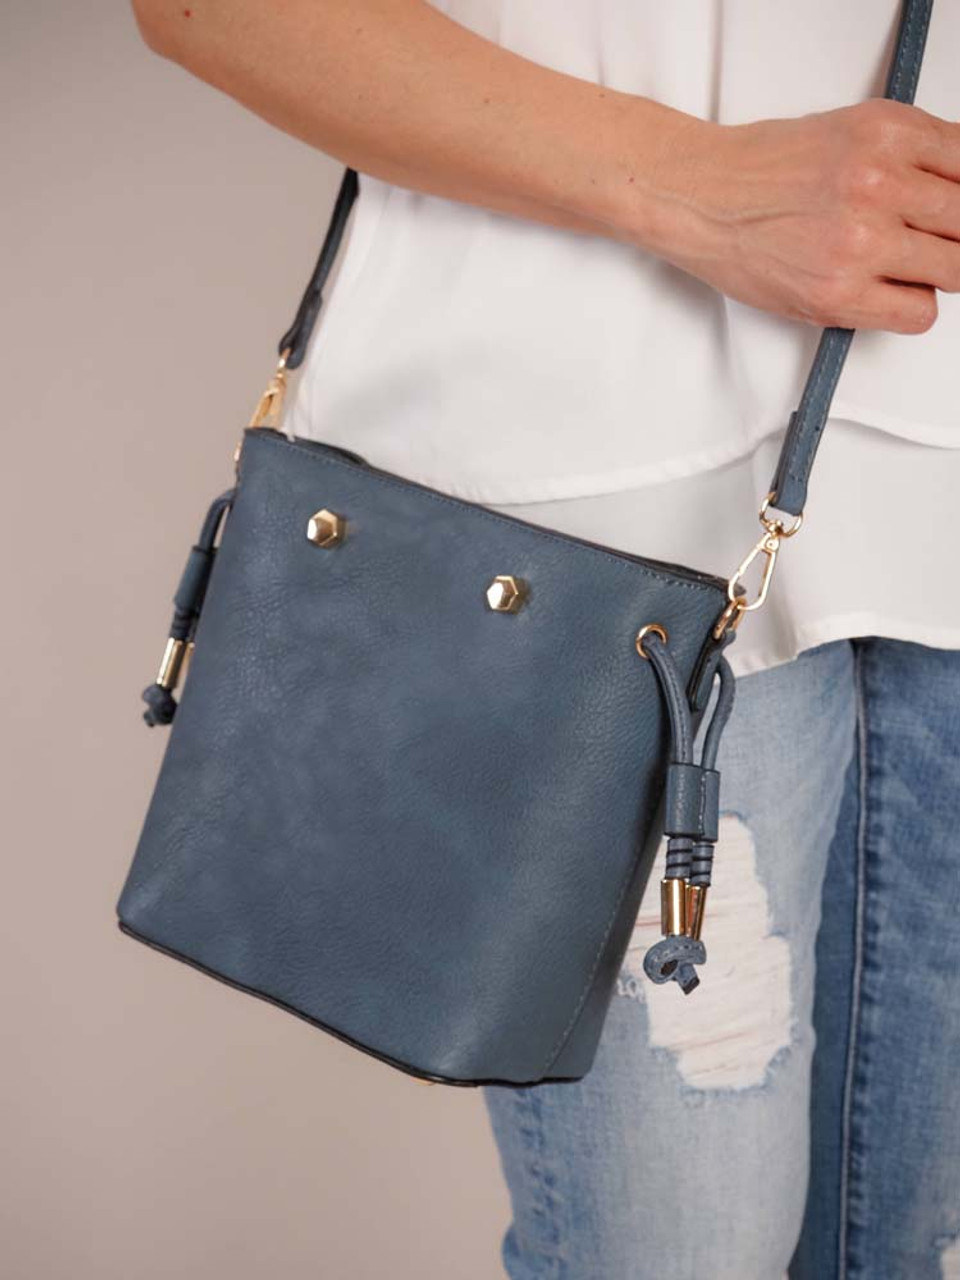 Indigo vegan leather with black edging and gold hardware. Includes an adjustable/detachable strap. Features card slots and a slip pocket inside and zip pocket on the outside. Use the snap closure and pull the side drawstrings to keep your items secure!